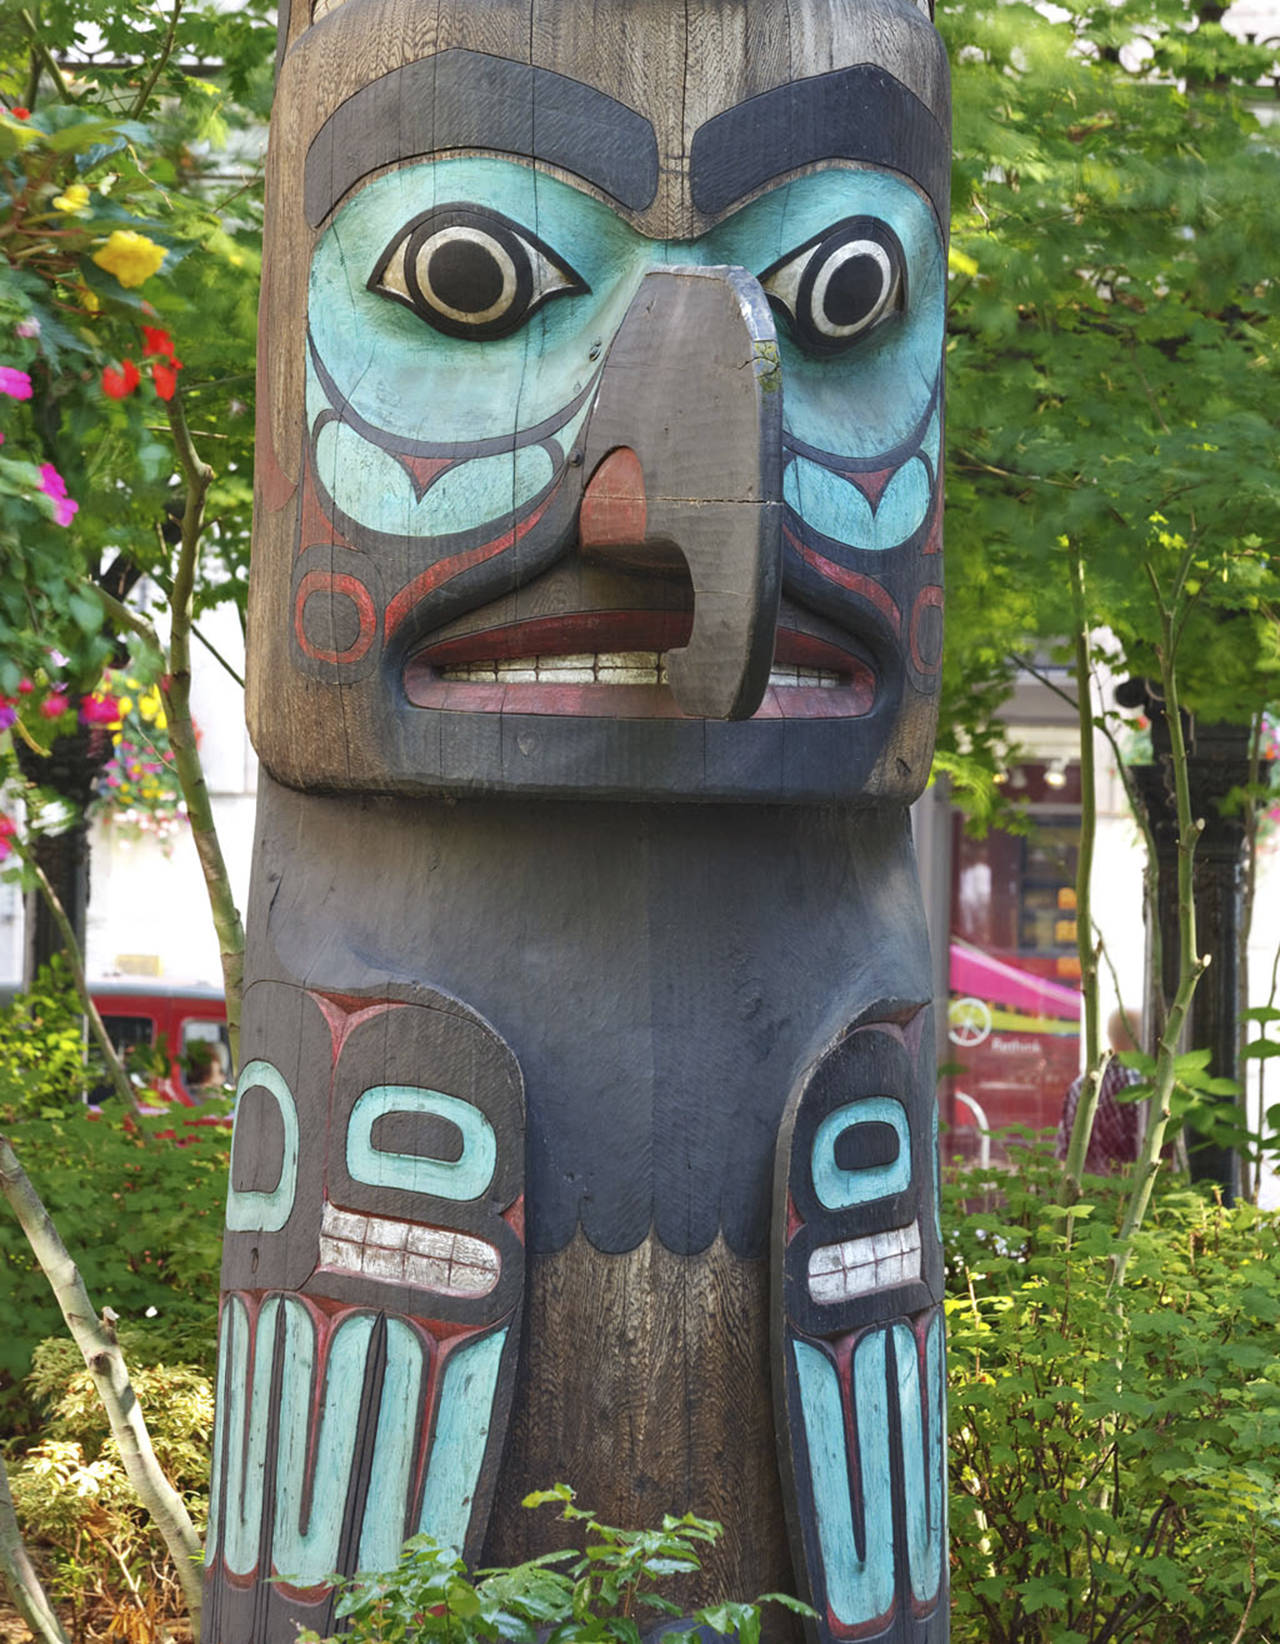 Native carvers of the Kyan and Kinninook Indian families carved this totem pole, which stands in Seattle's Pioneer Place Park. (Spike Mafford/Seattle.gov)